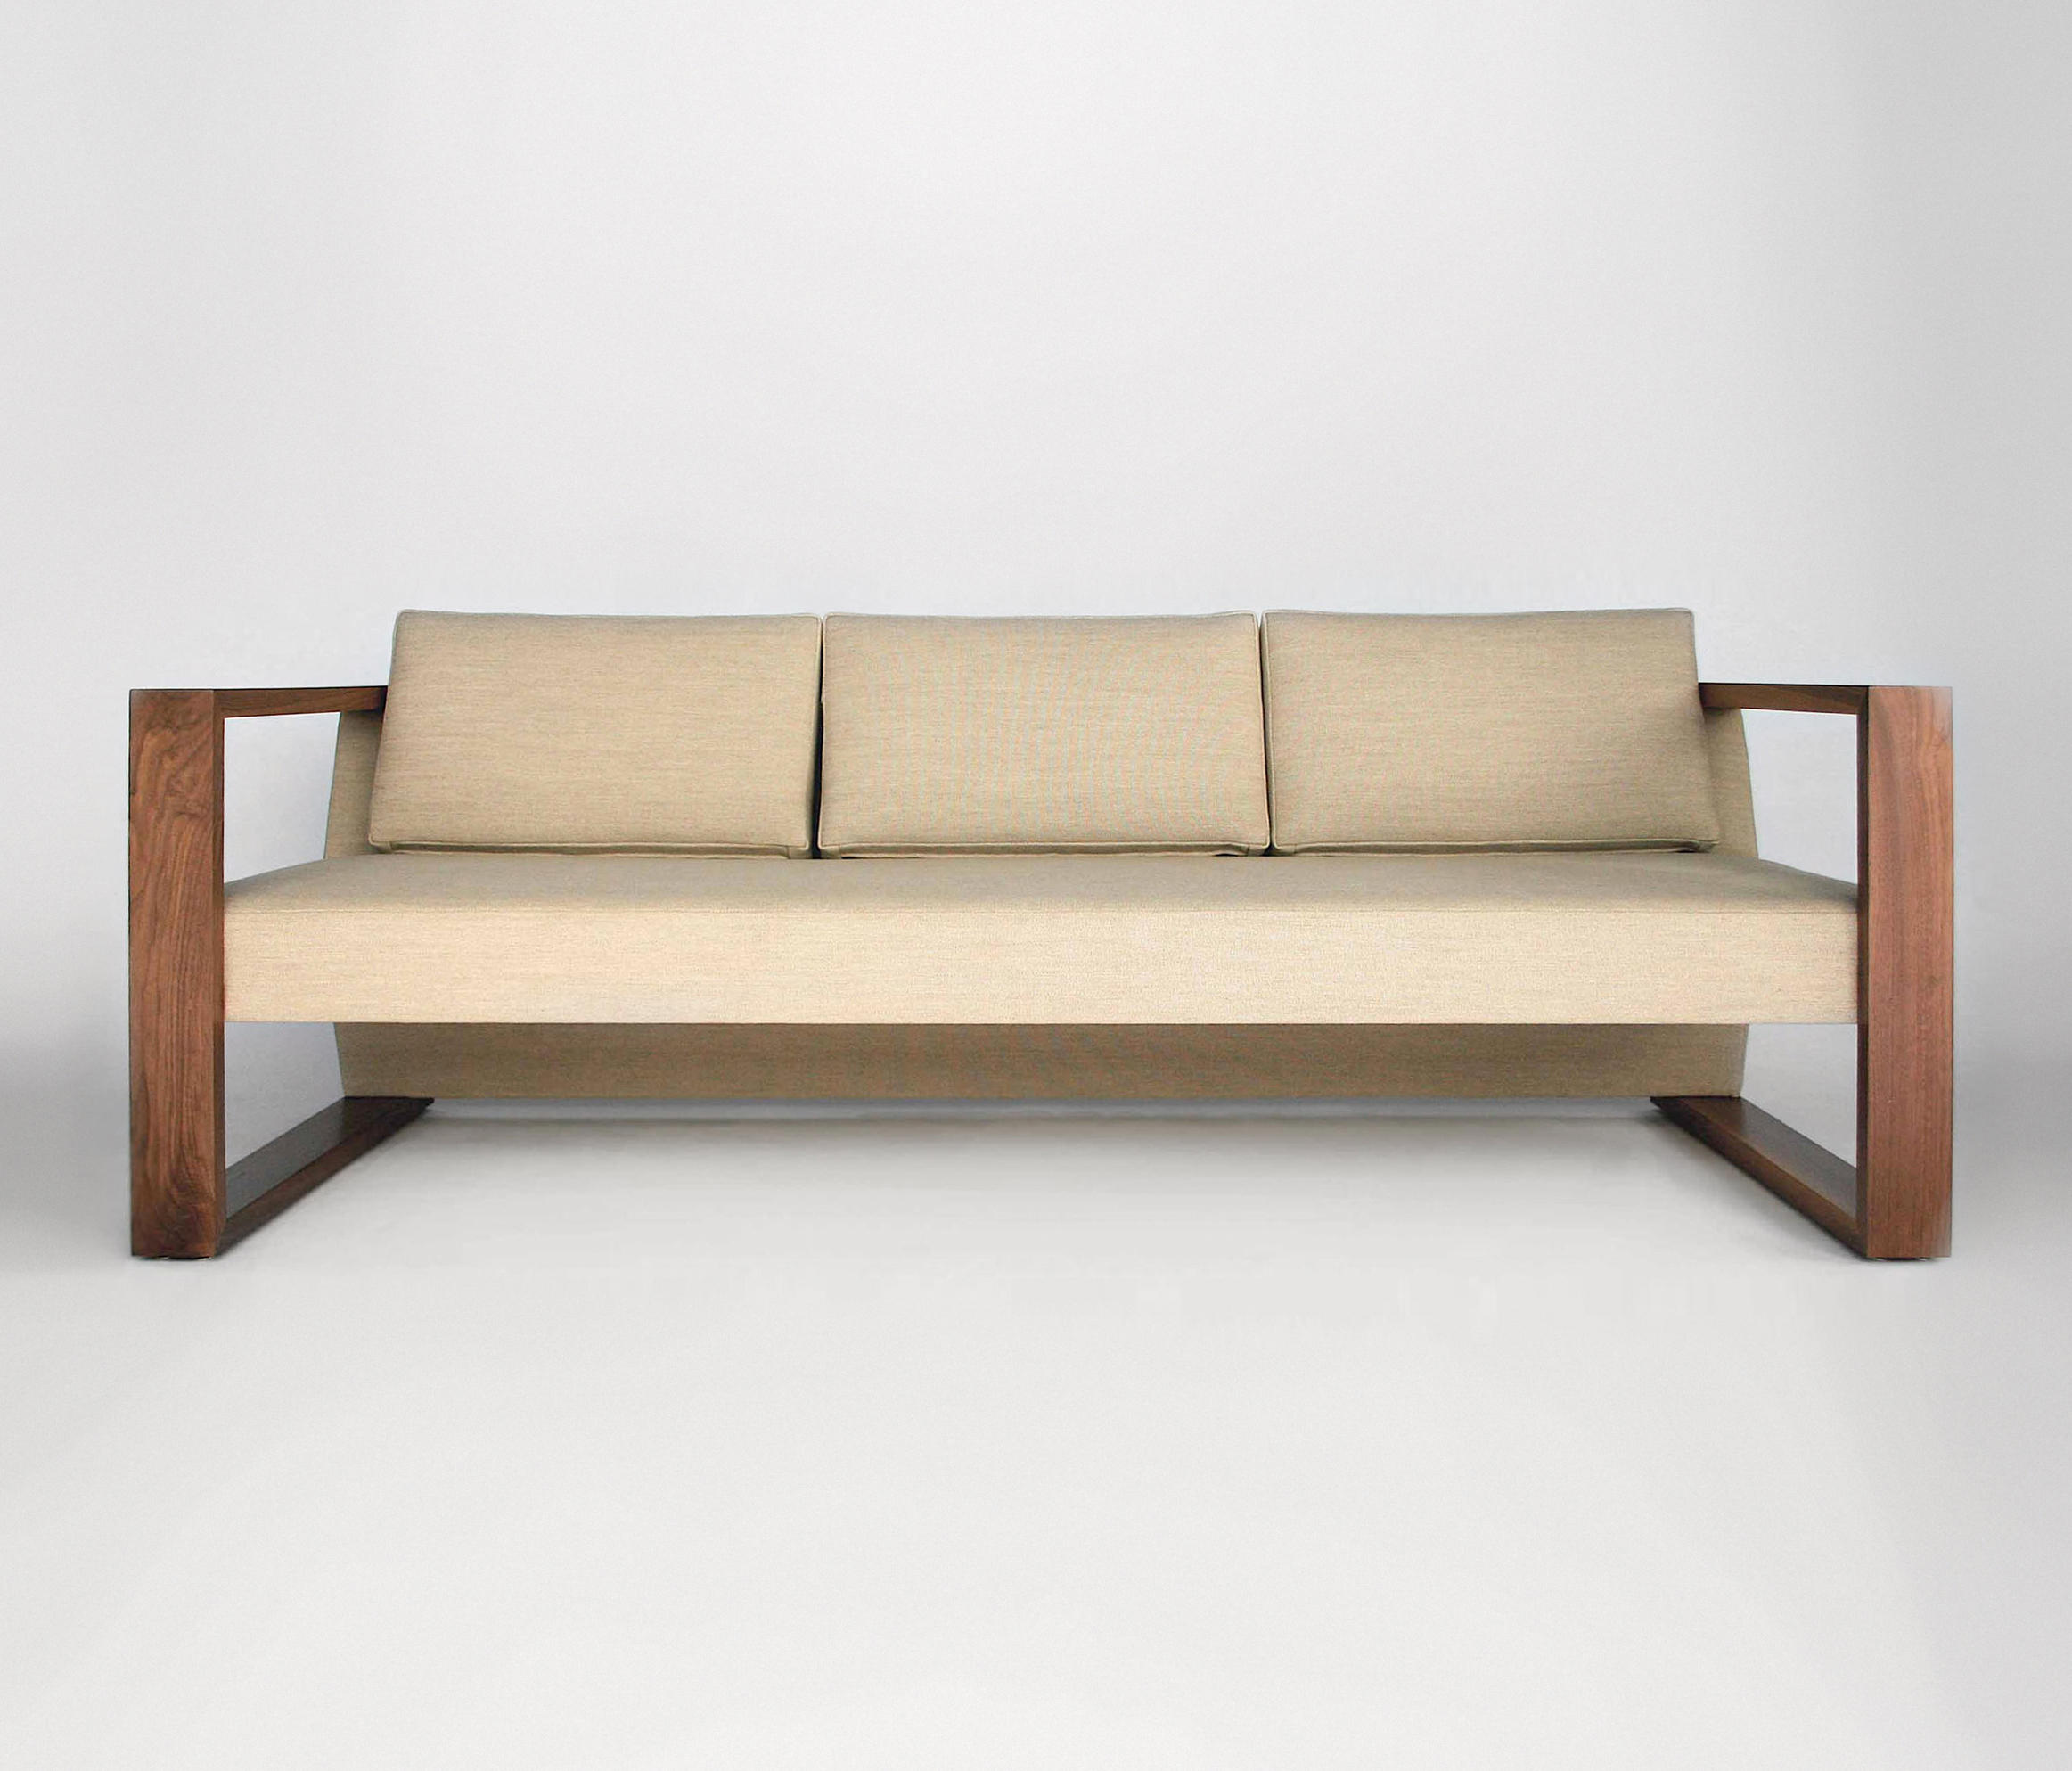 MAXELL SOFA Lounge sofas from Phase Design